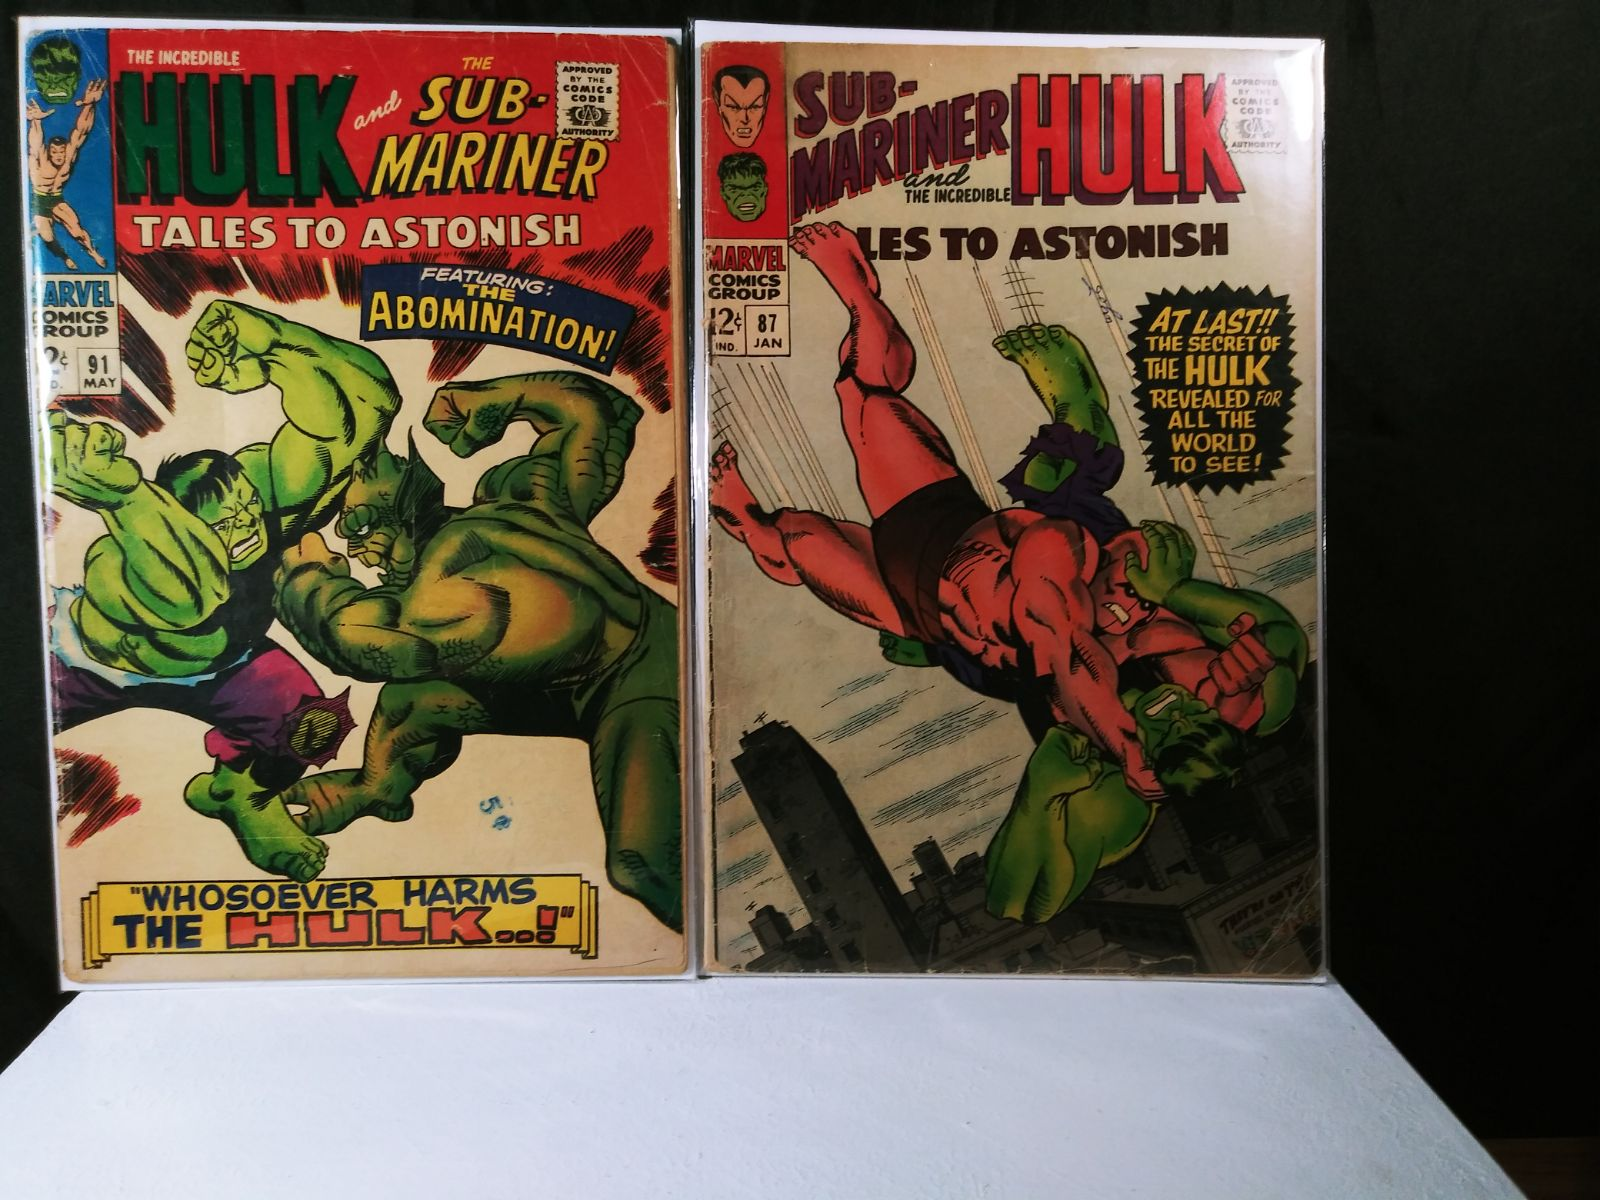 Tales to Astonish, 87 & 91, 12 cent